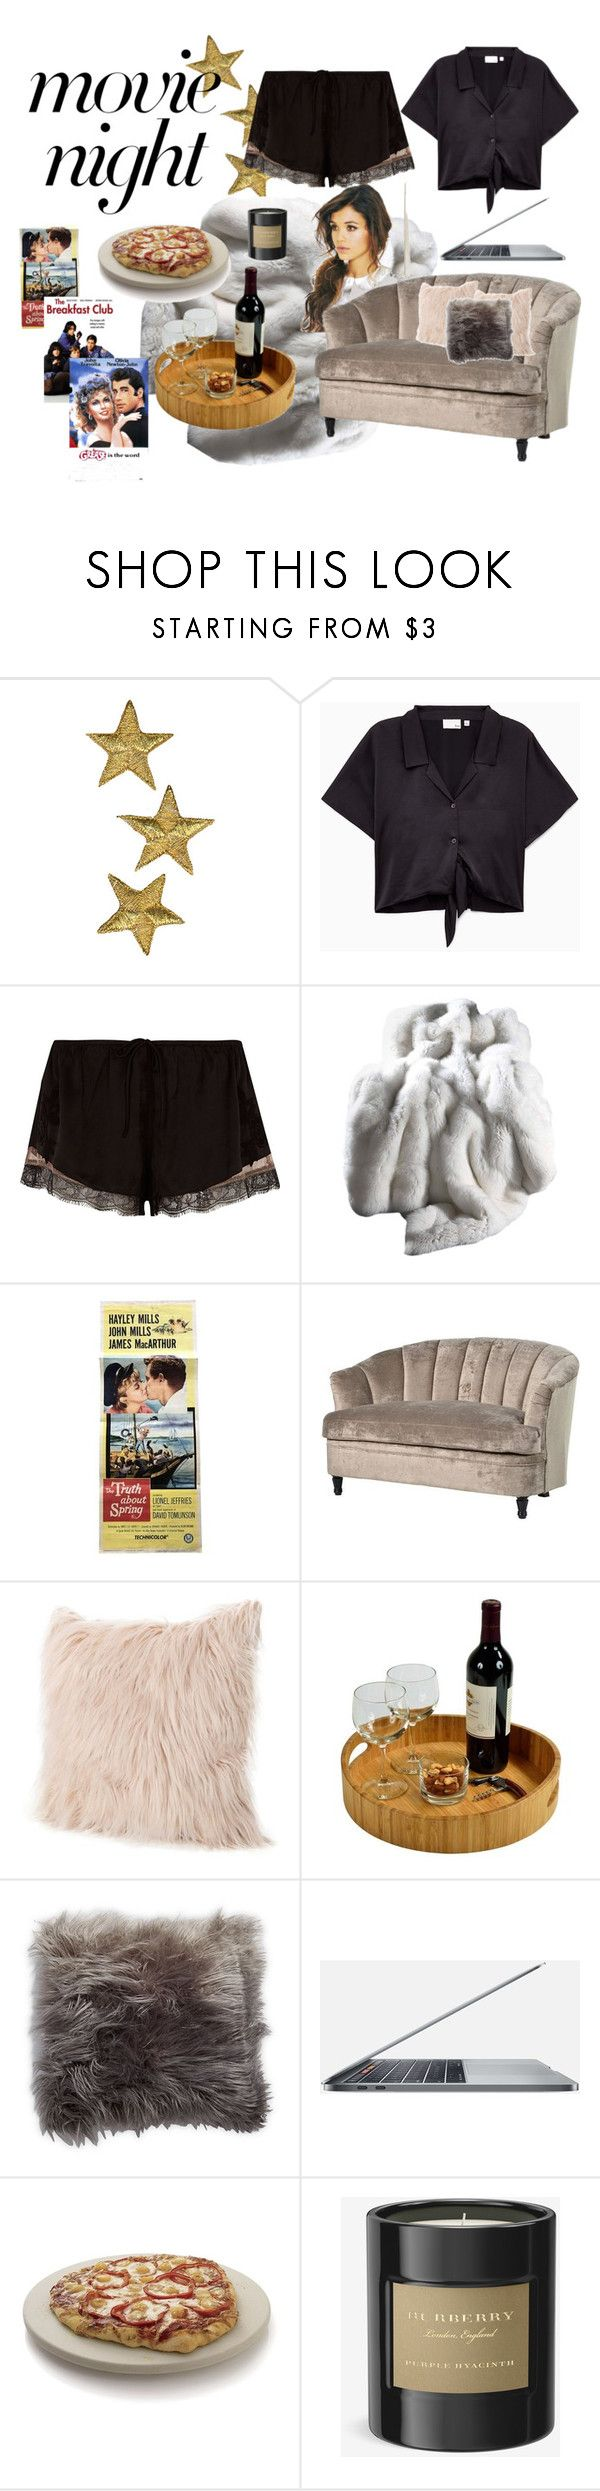 """movie night"" by neesha-jivarajan ❤ liked on Polyvore featuring River Island, Picnic at Ascot, Thro, Crate and Barrel and Burberry"